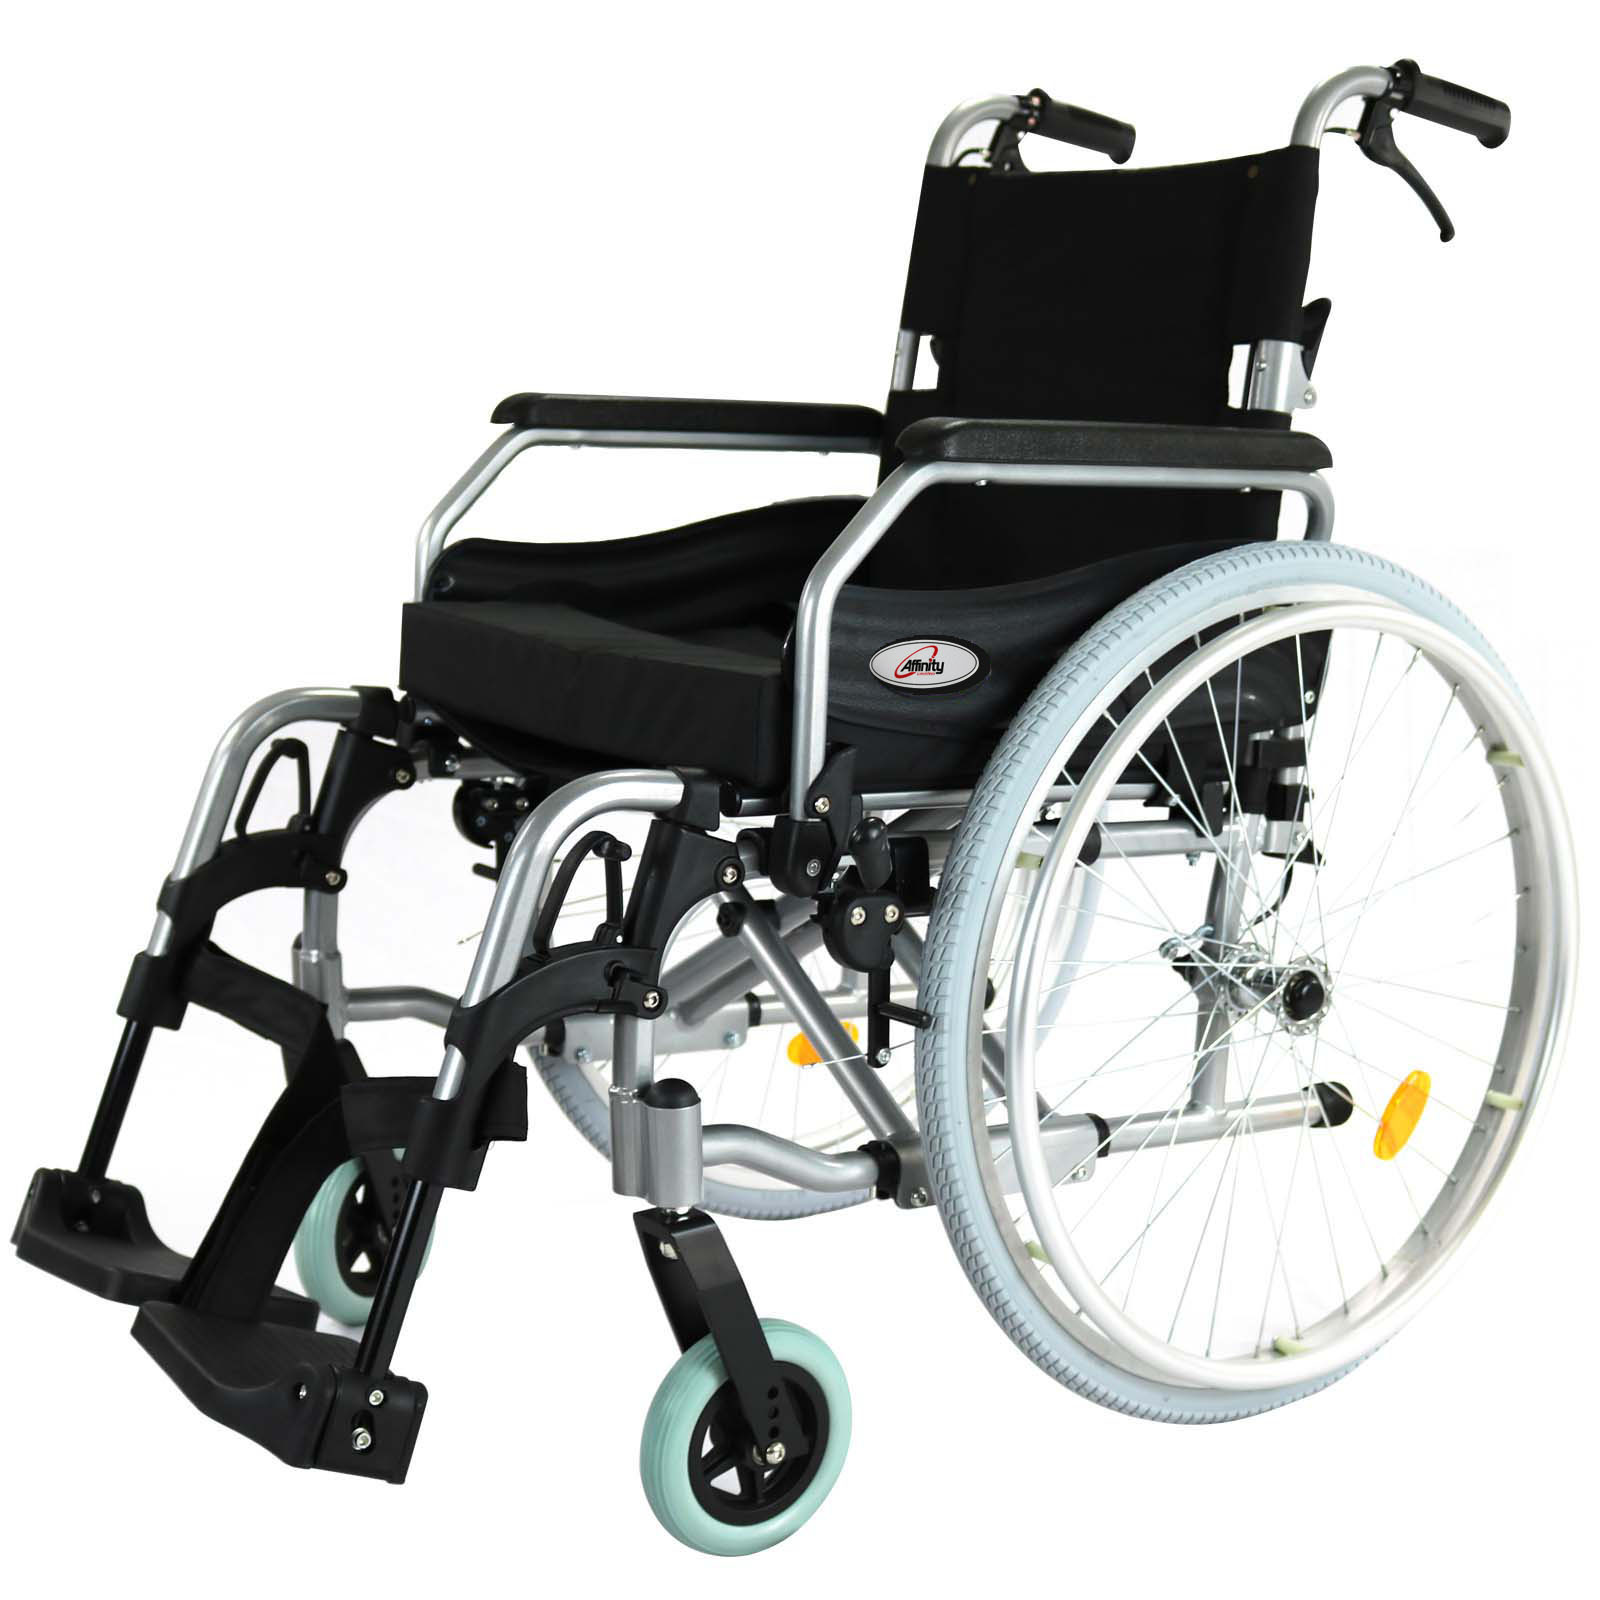 wheelchair ebay gaming desk chairs folding back alloy armrests 24 quot wheels manual